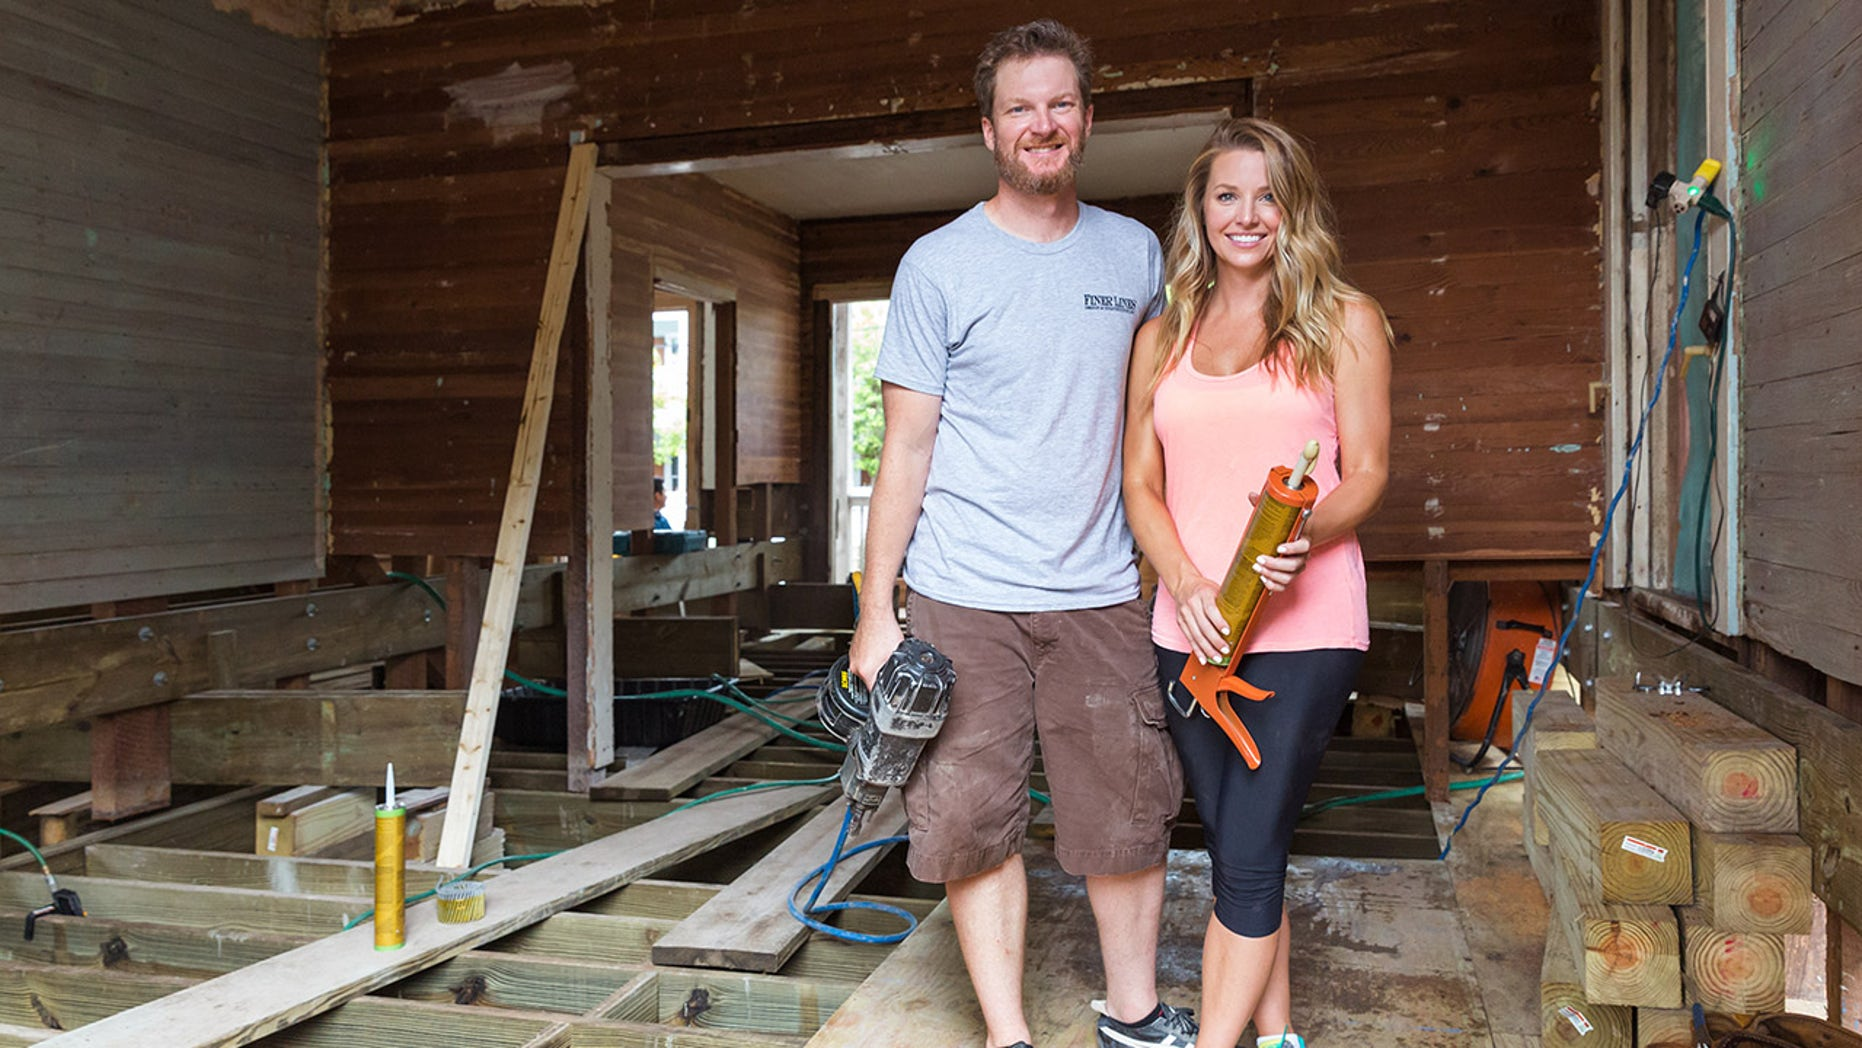 Dale and Amy Earnhardt have a new TV show on DIY Network debuting on June 2.